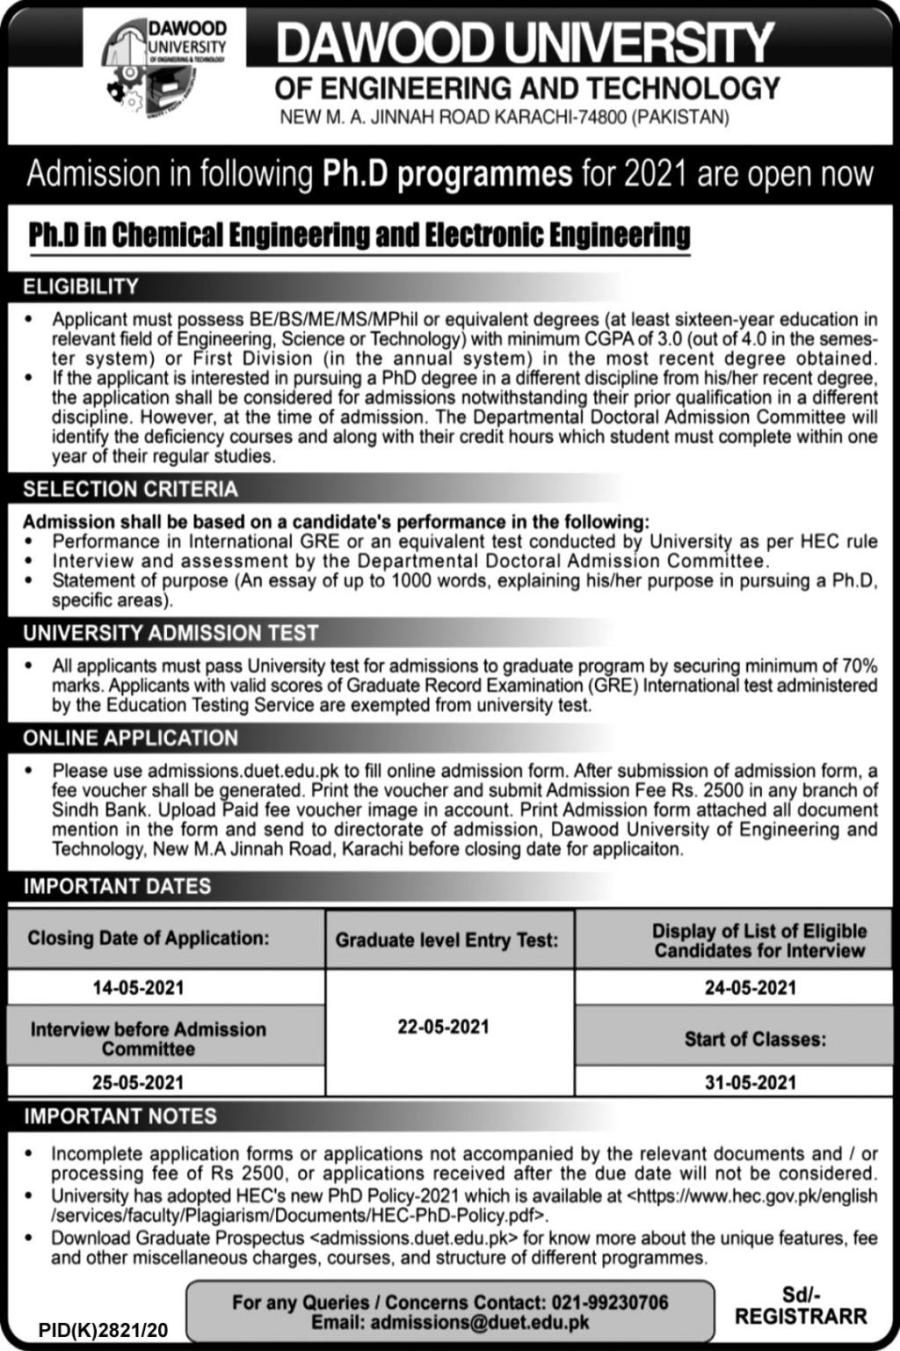 Dawood University of Engineering and Technology Admissions 2021